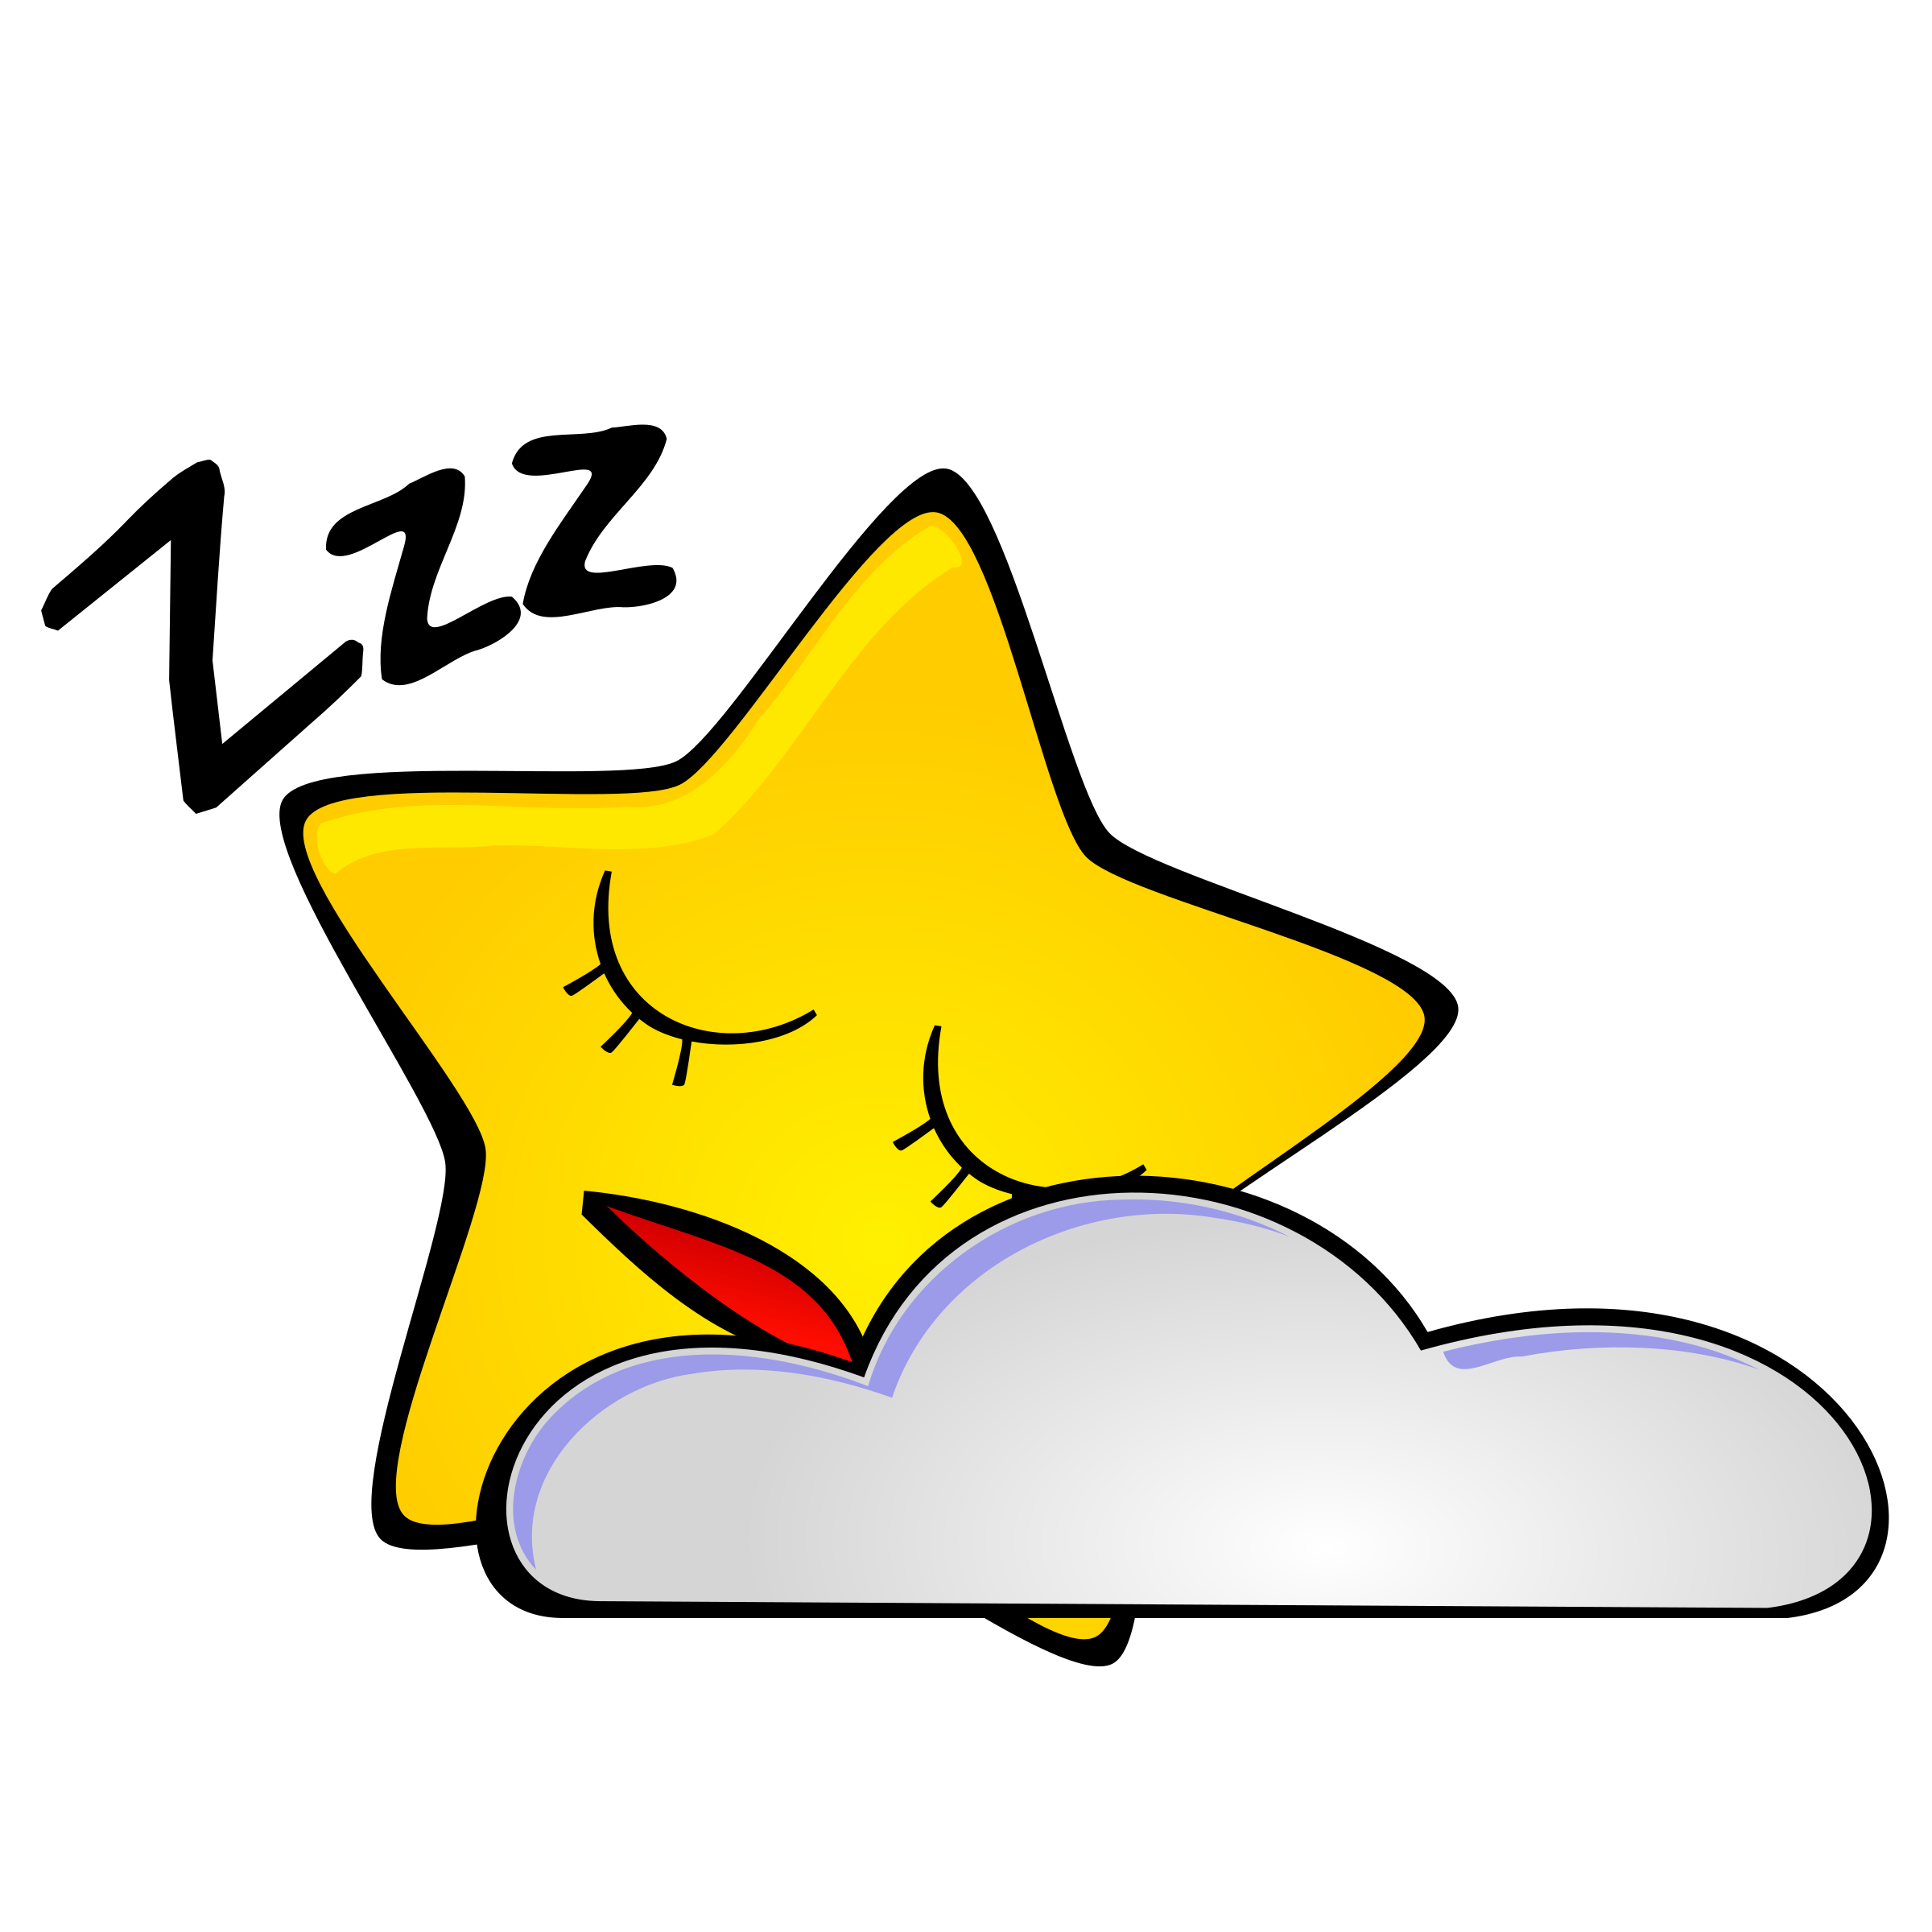 Star people clipart picture royalty free stock Night Fury Drawing at GetDrawings.com | Free for personal use Night ... picture royalty free stock